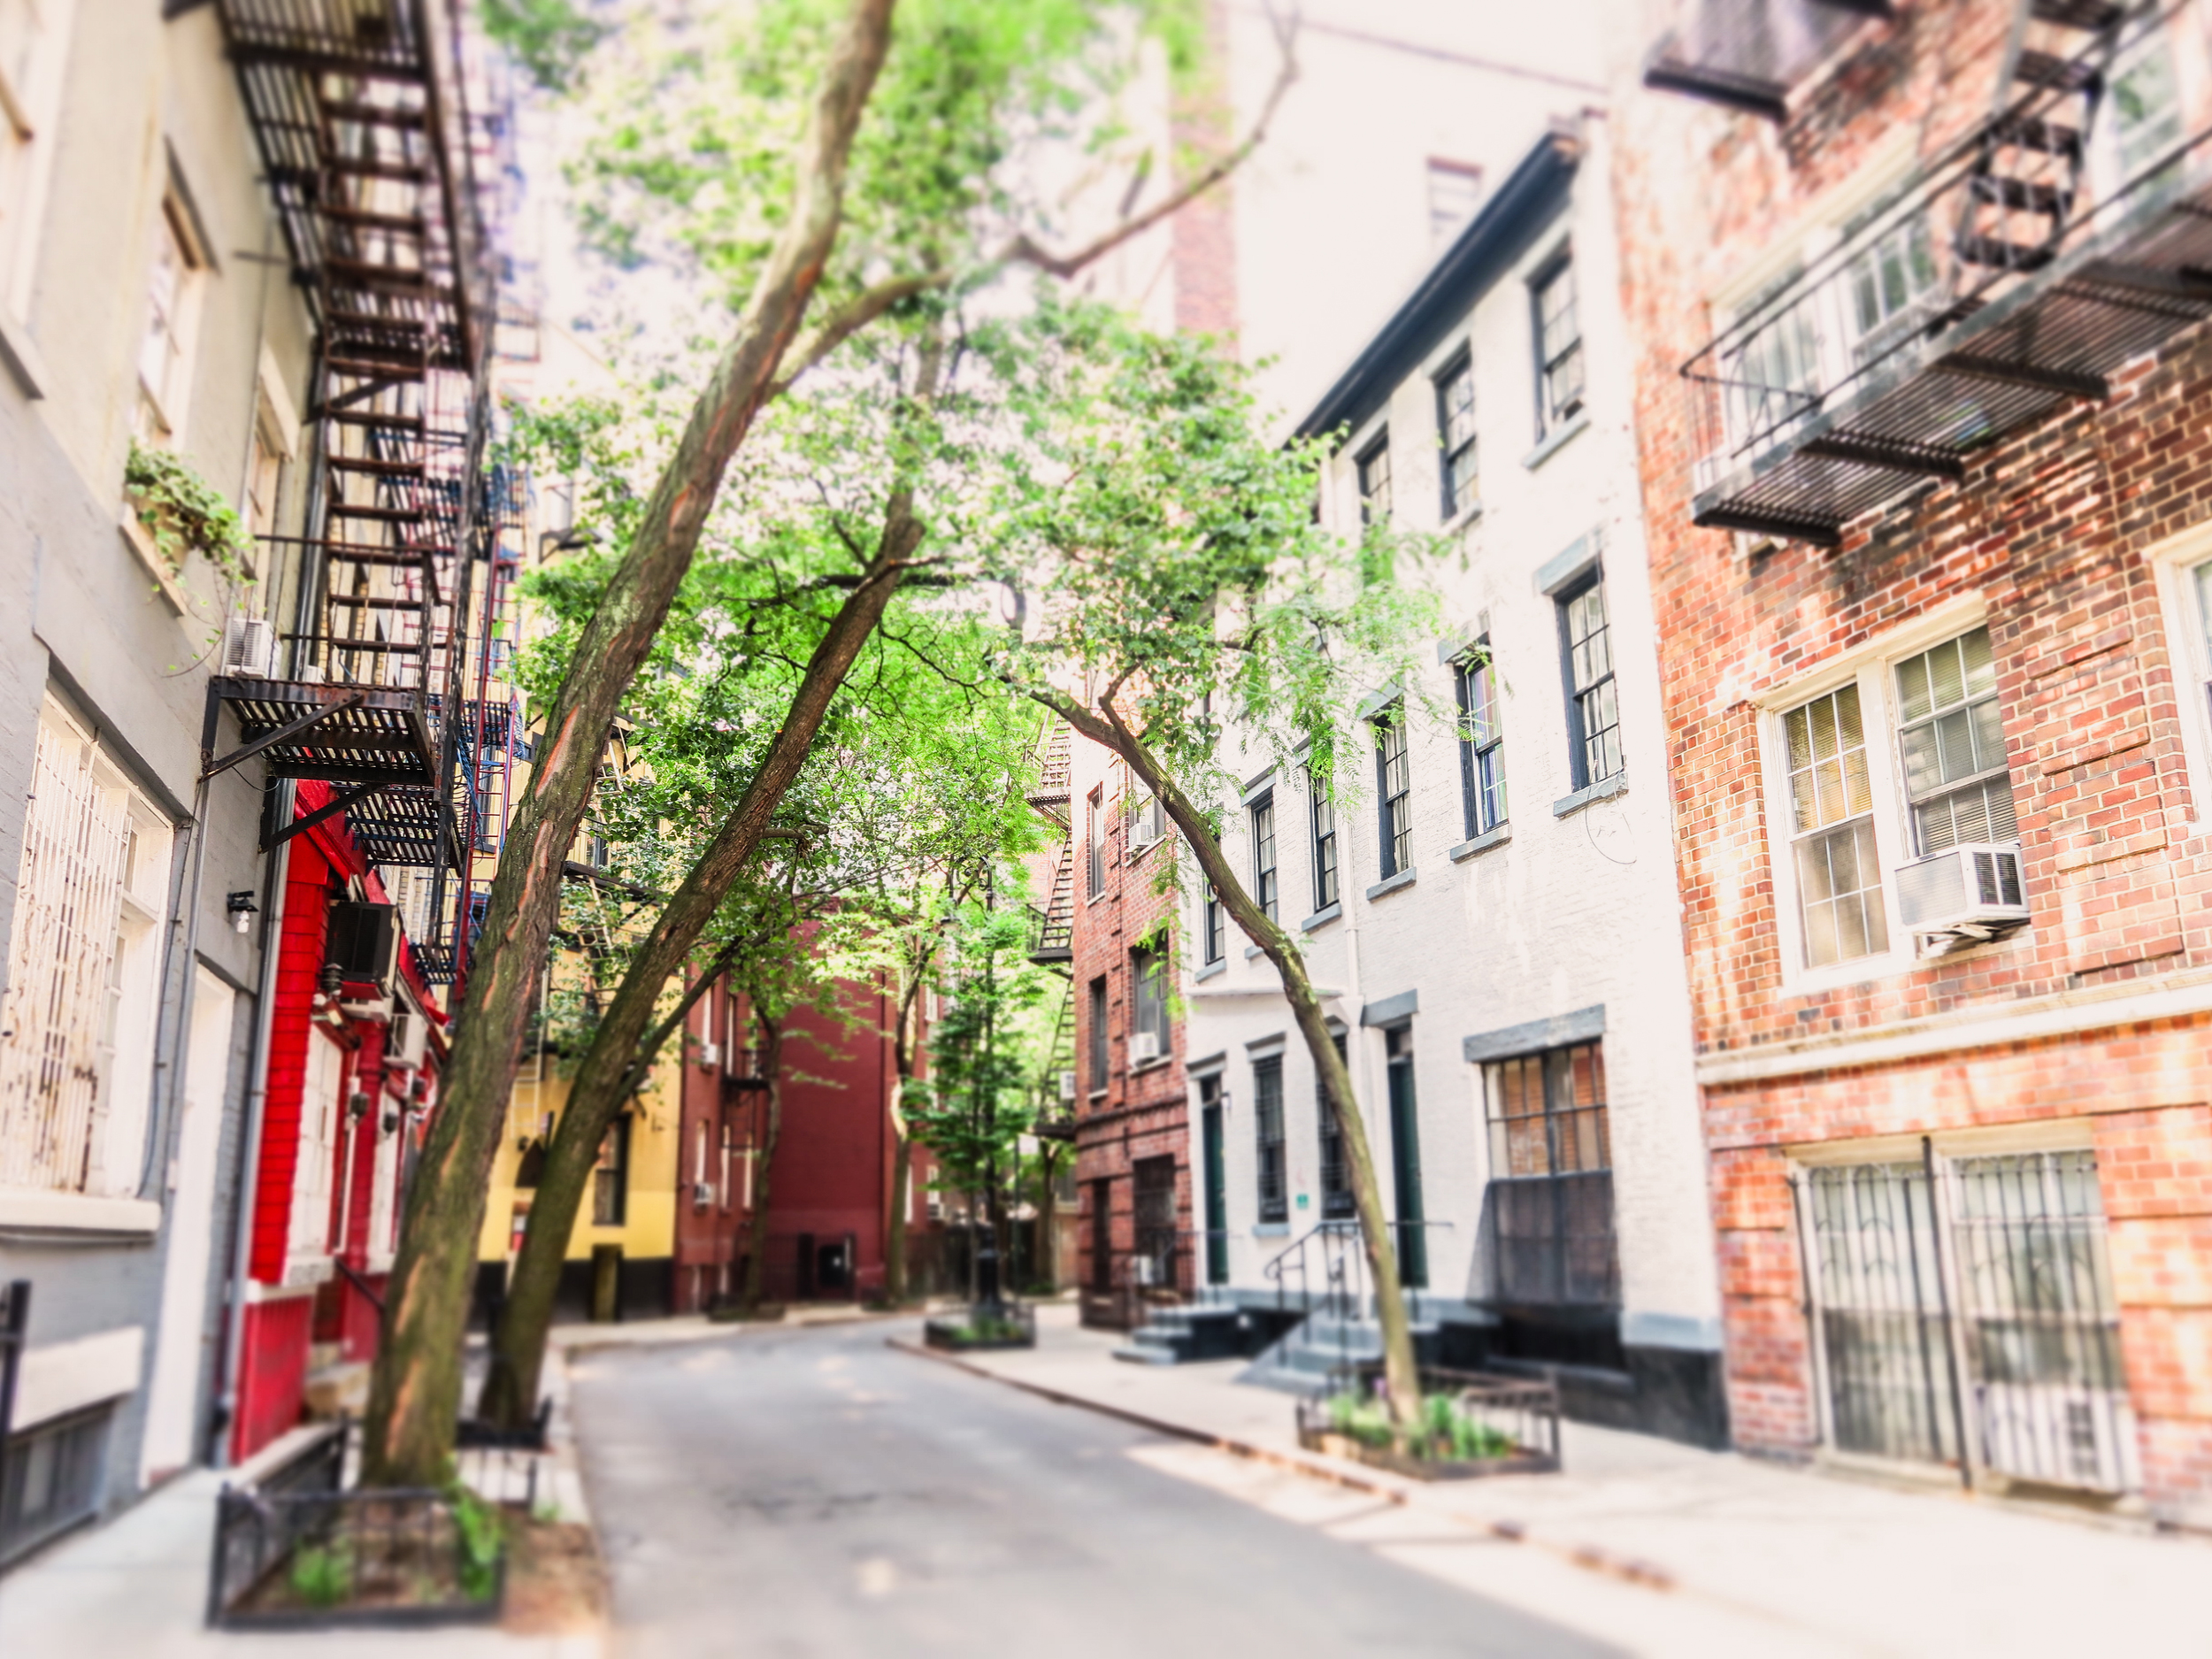 Zack Smith Photography New York City Street Apartments Fire Escapes Trees Urban Scenery Landscape